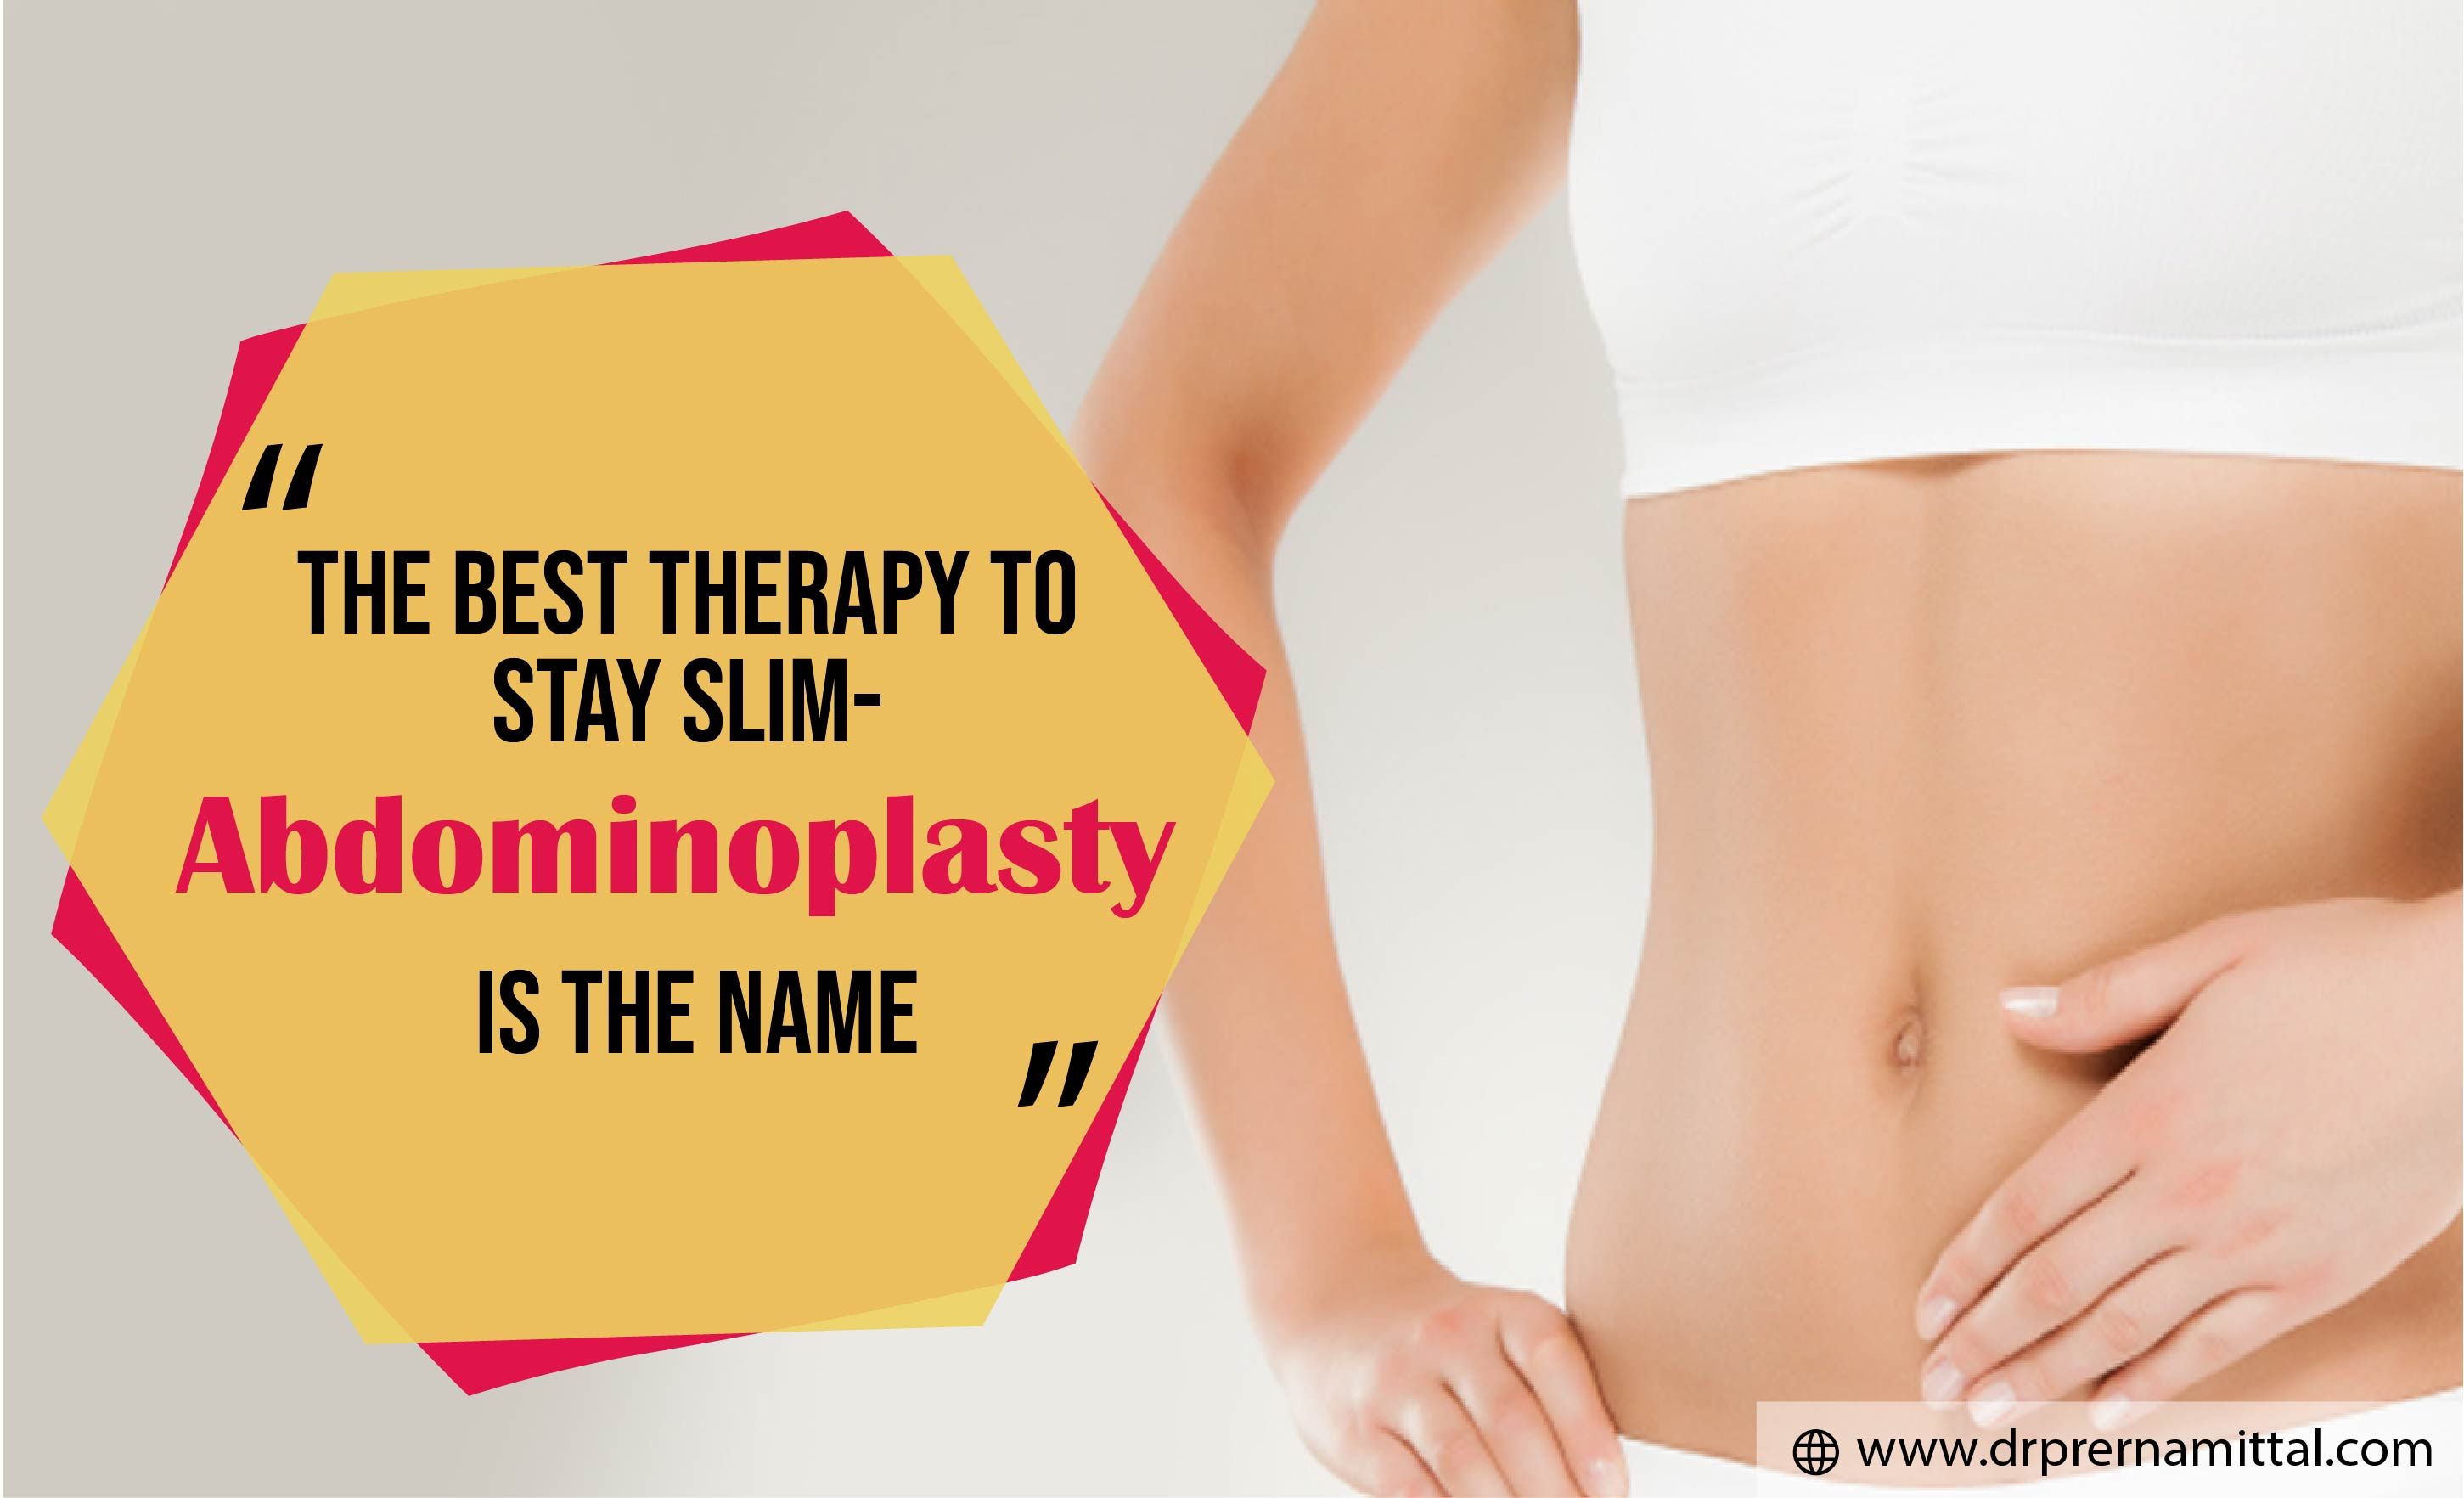 The Best Therapy to Stay Slim